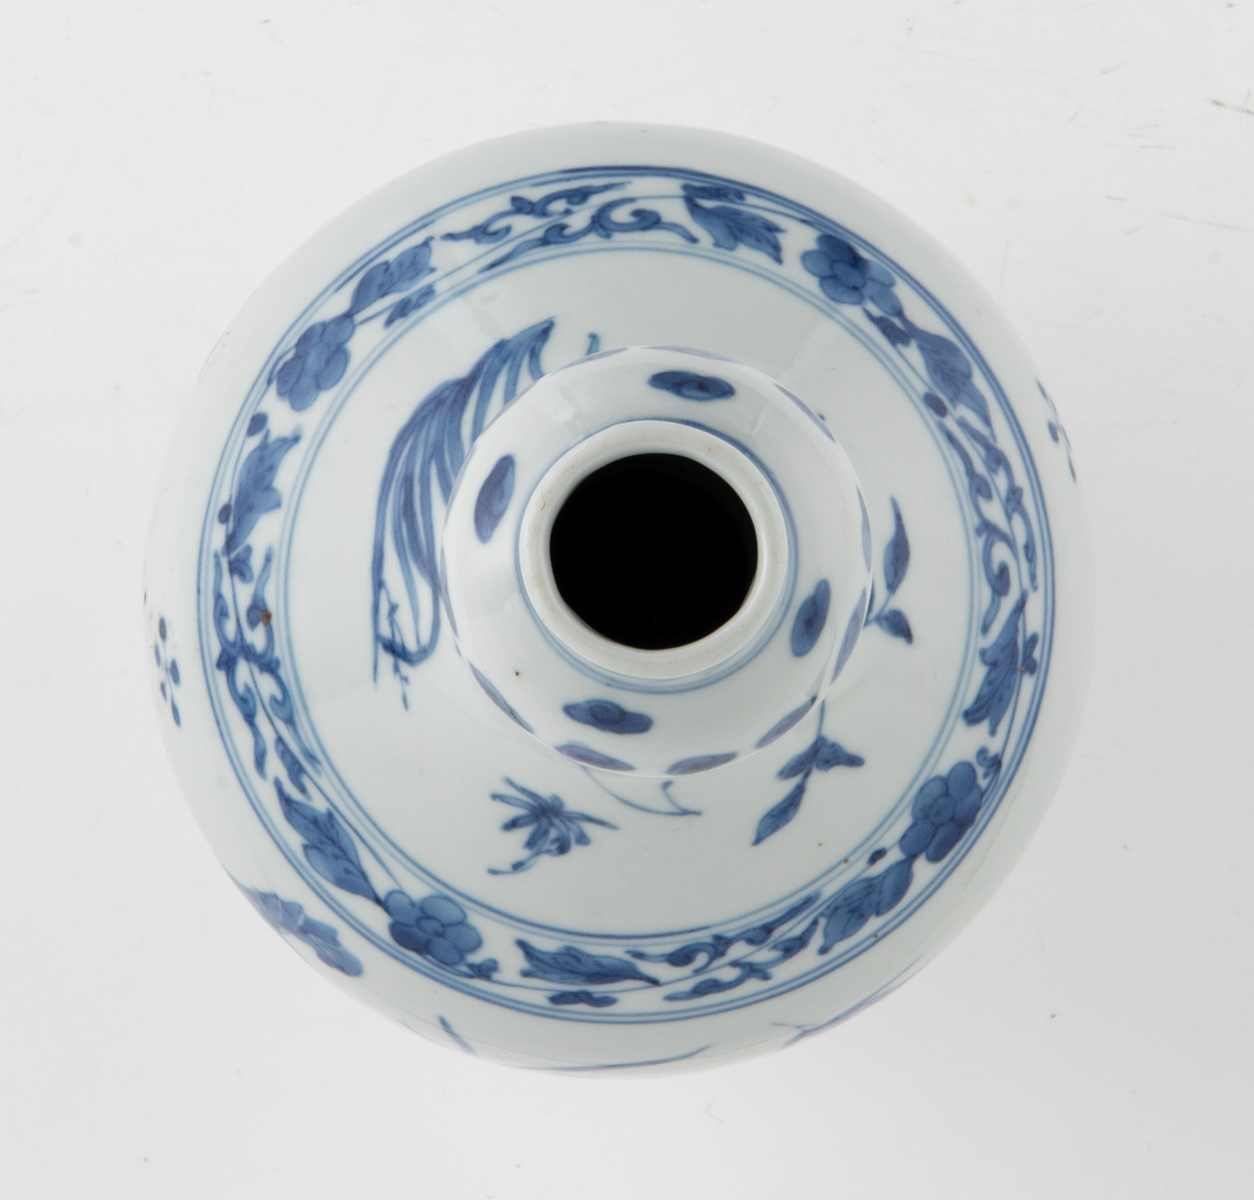 Lot 43 - A Chinese Transition type blue and white garlic neck bottle vase with floral design, H 36,5 cm